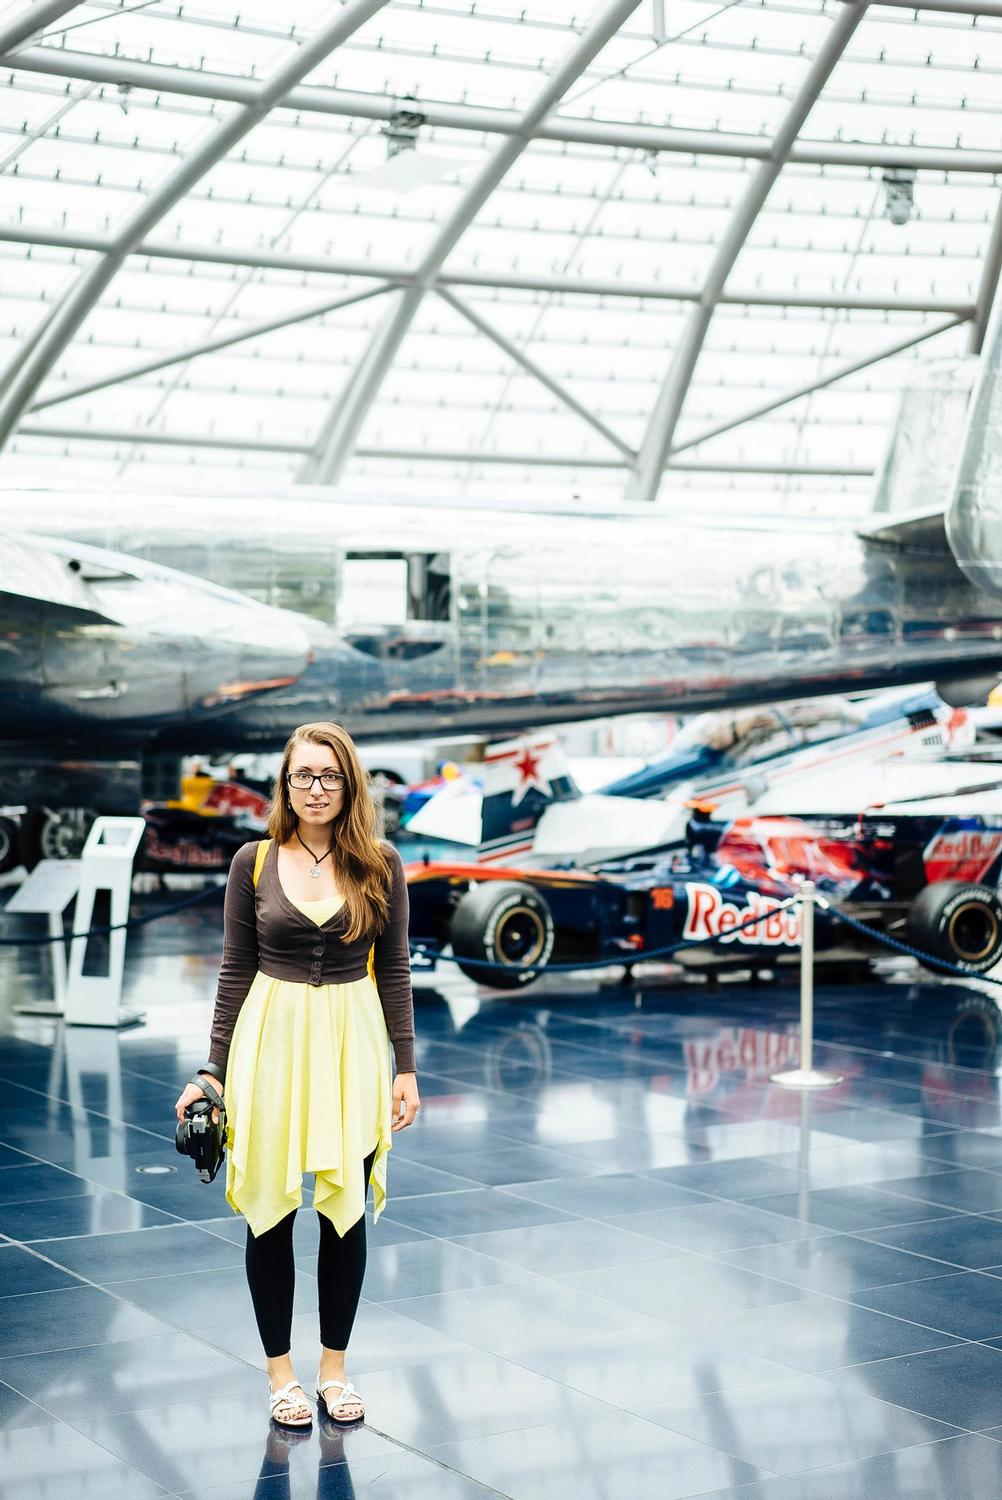 Photo of my wife in RedBull museum.